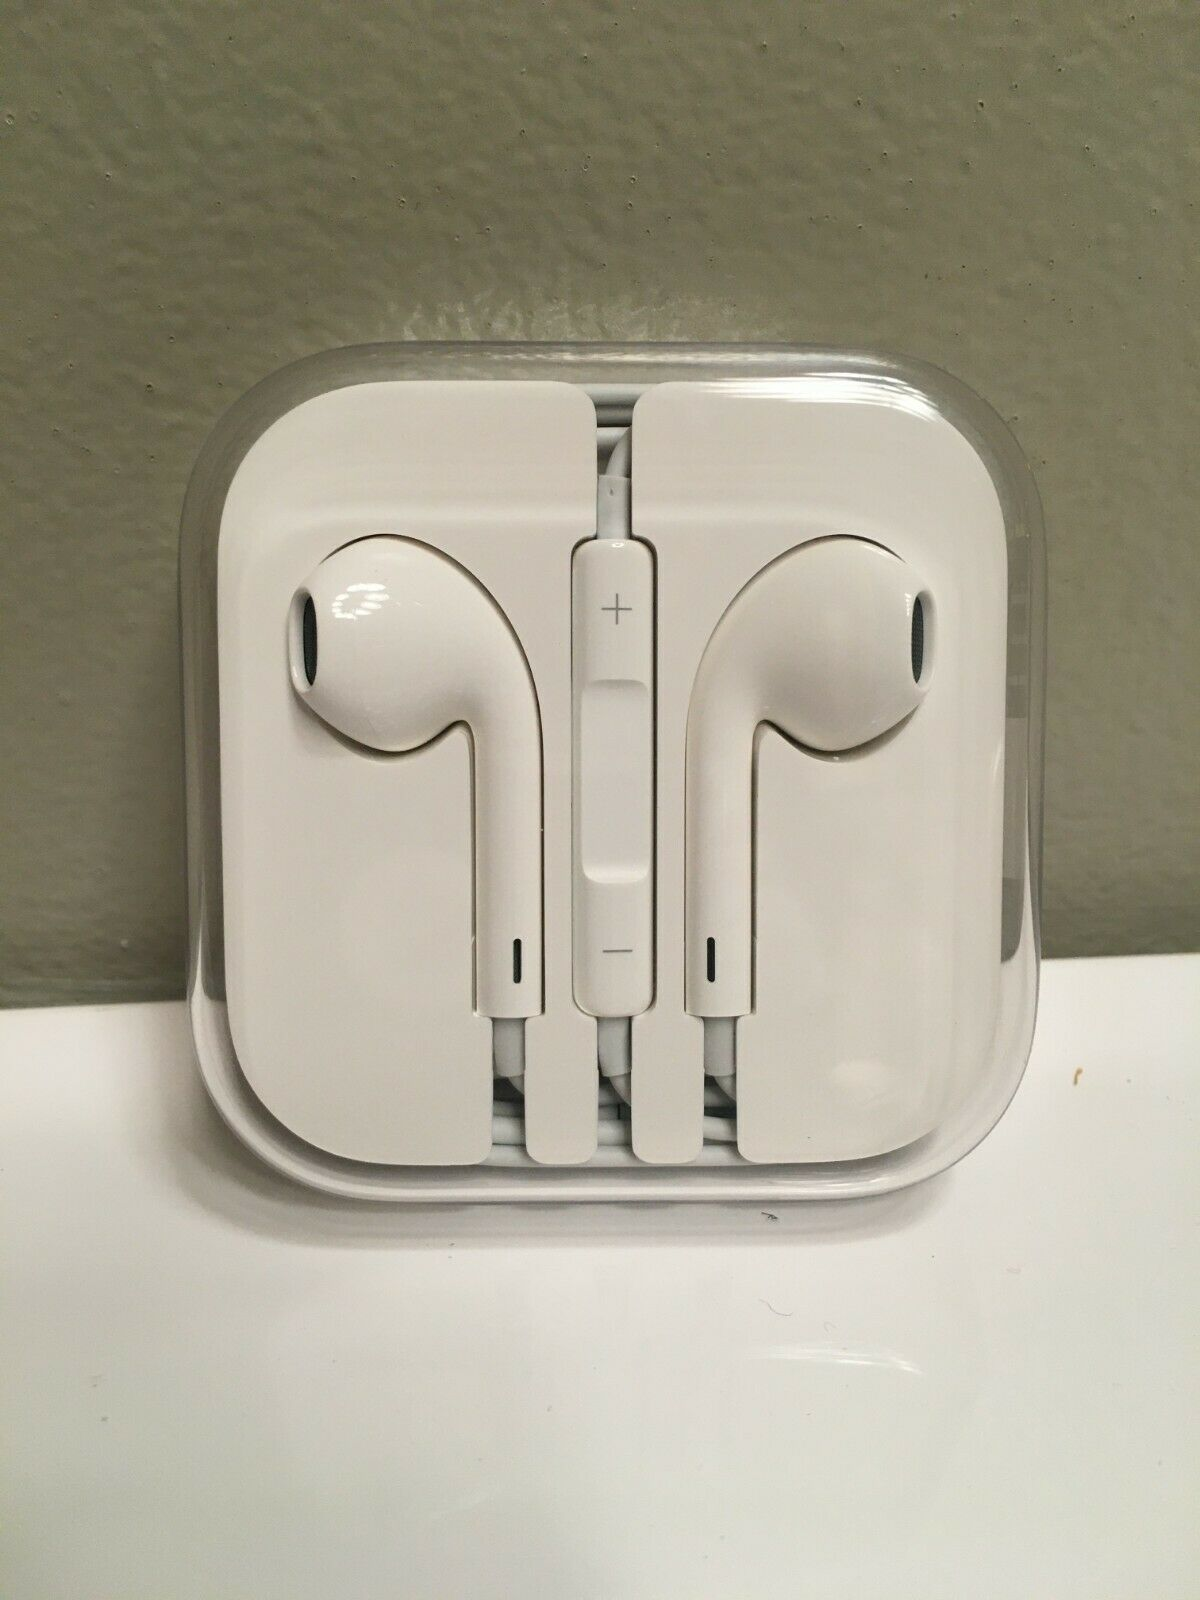 Original OEM Genuine Apple IPhone 8 Earphones Earpods Earbuds - $7.95